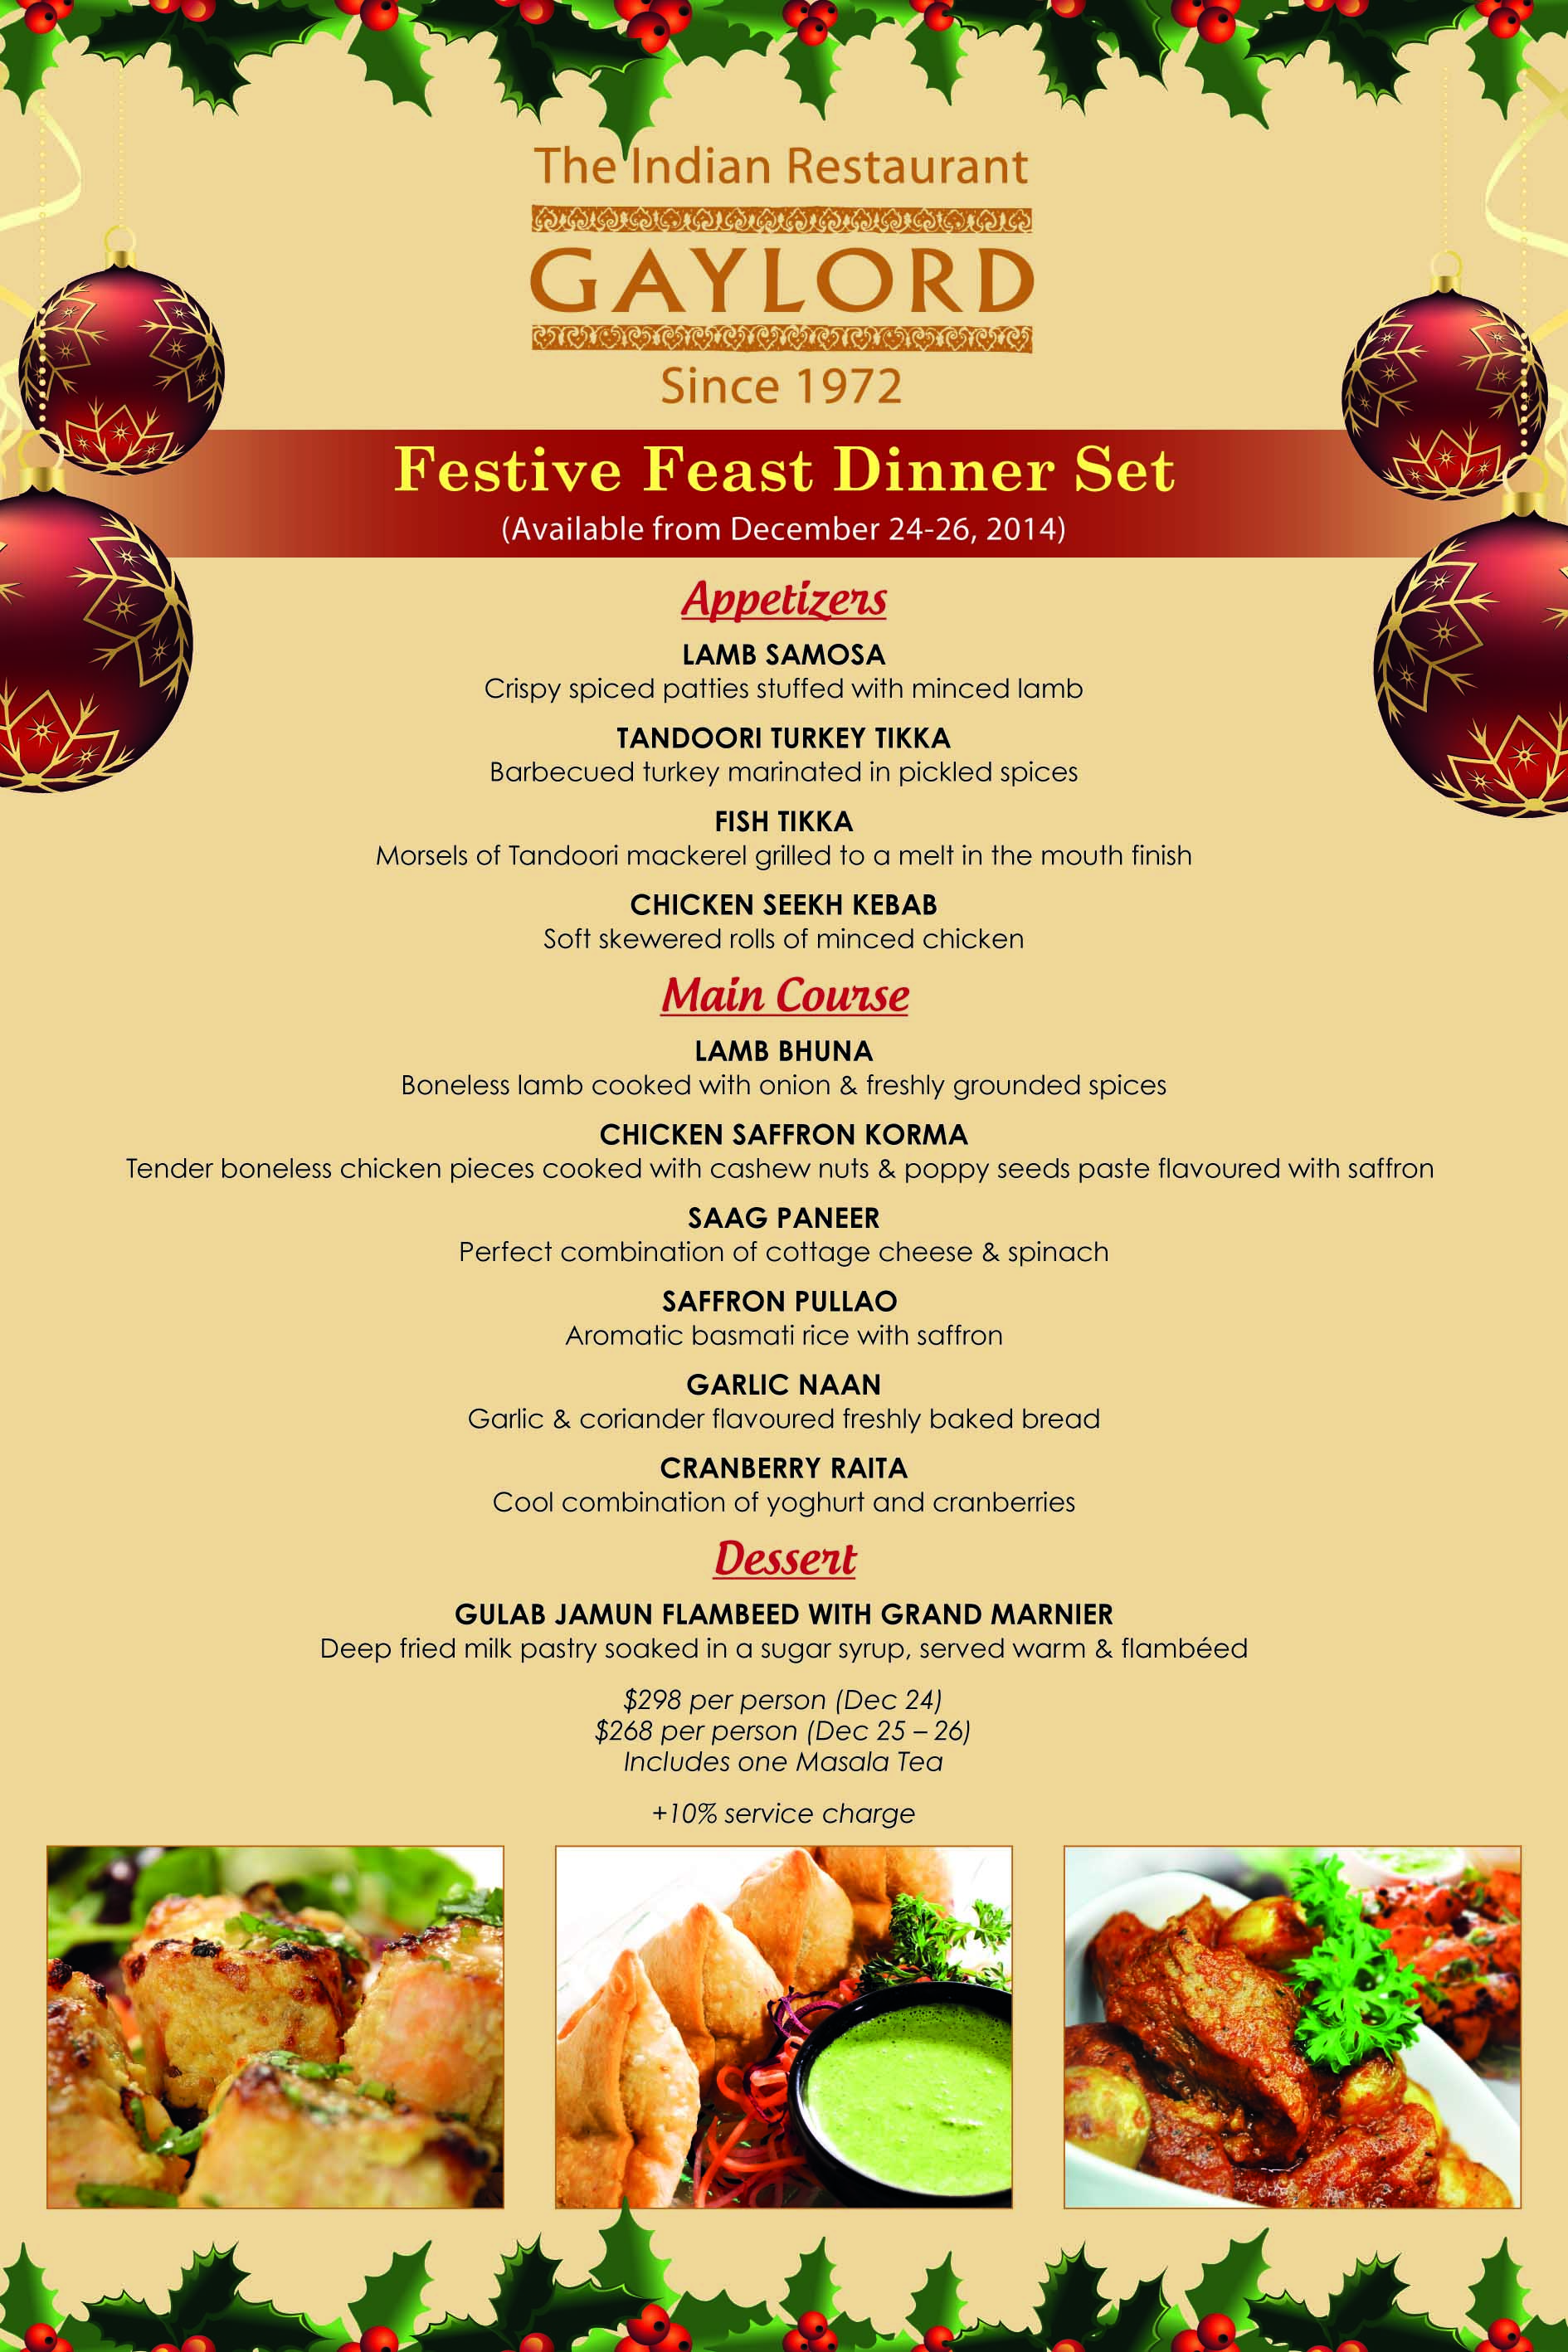 Christmas Restaurant Poster.Gaylord Indian Restaurant Christmas Festive Poster Mavens